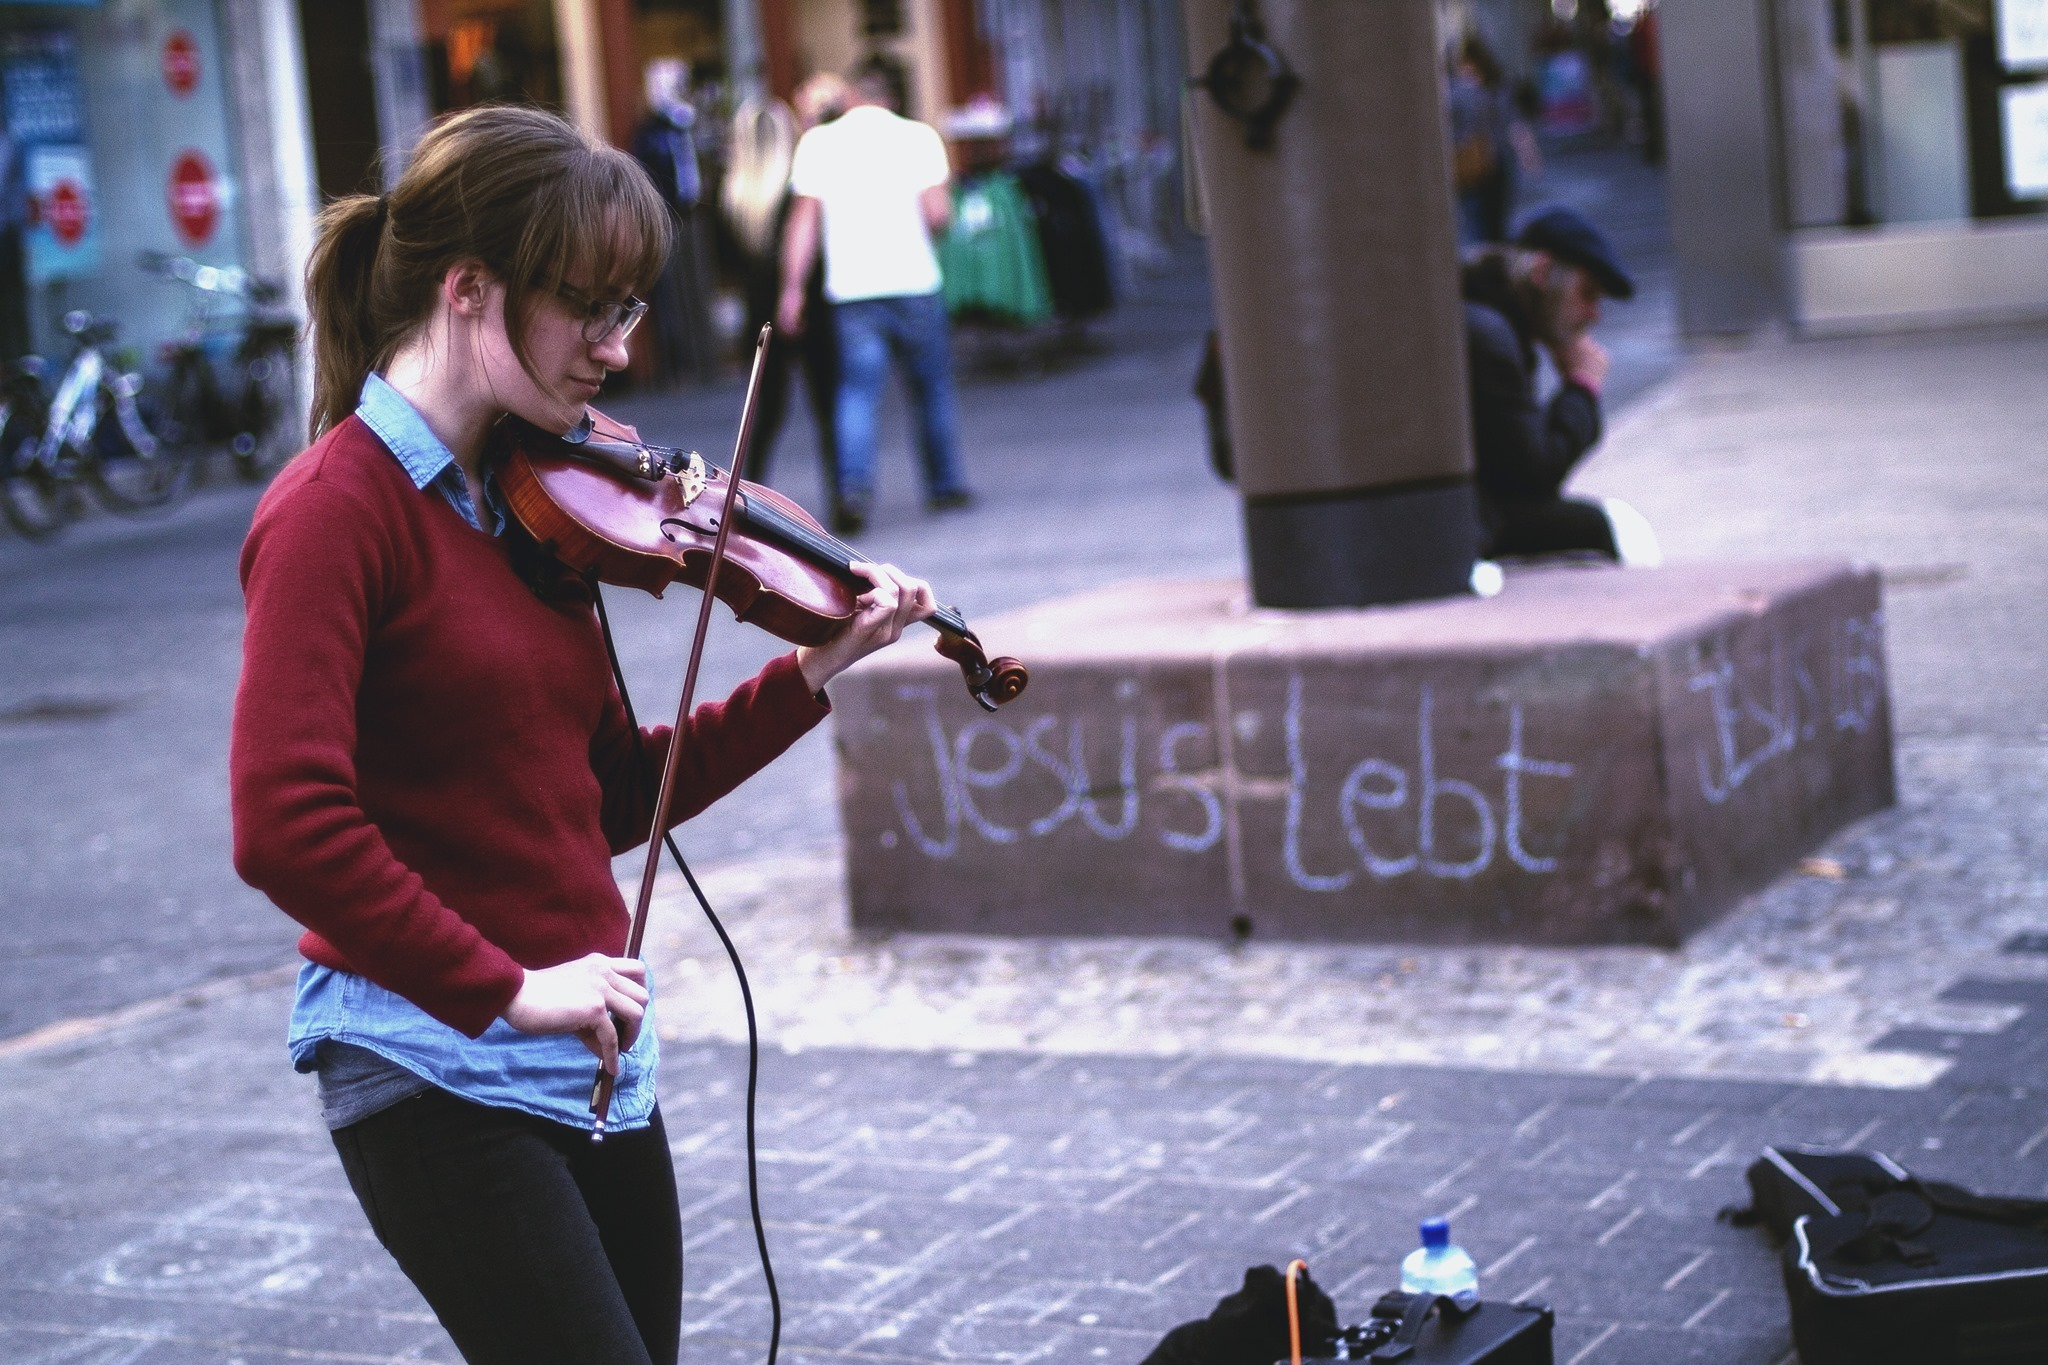 Should I Quit Violin? - My Time Spent Traveling as a Street Musician